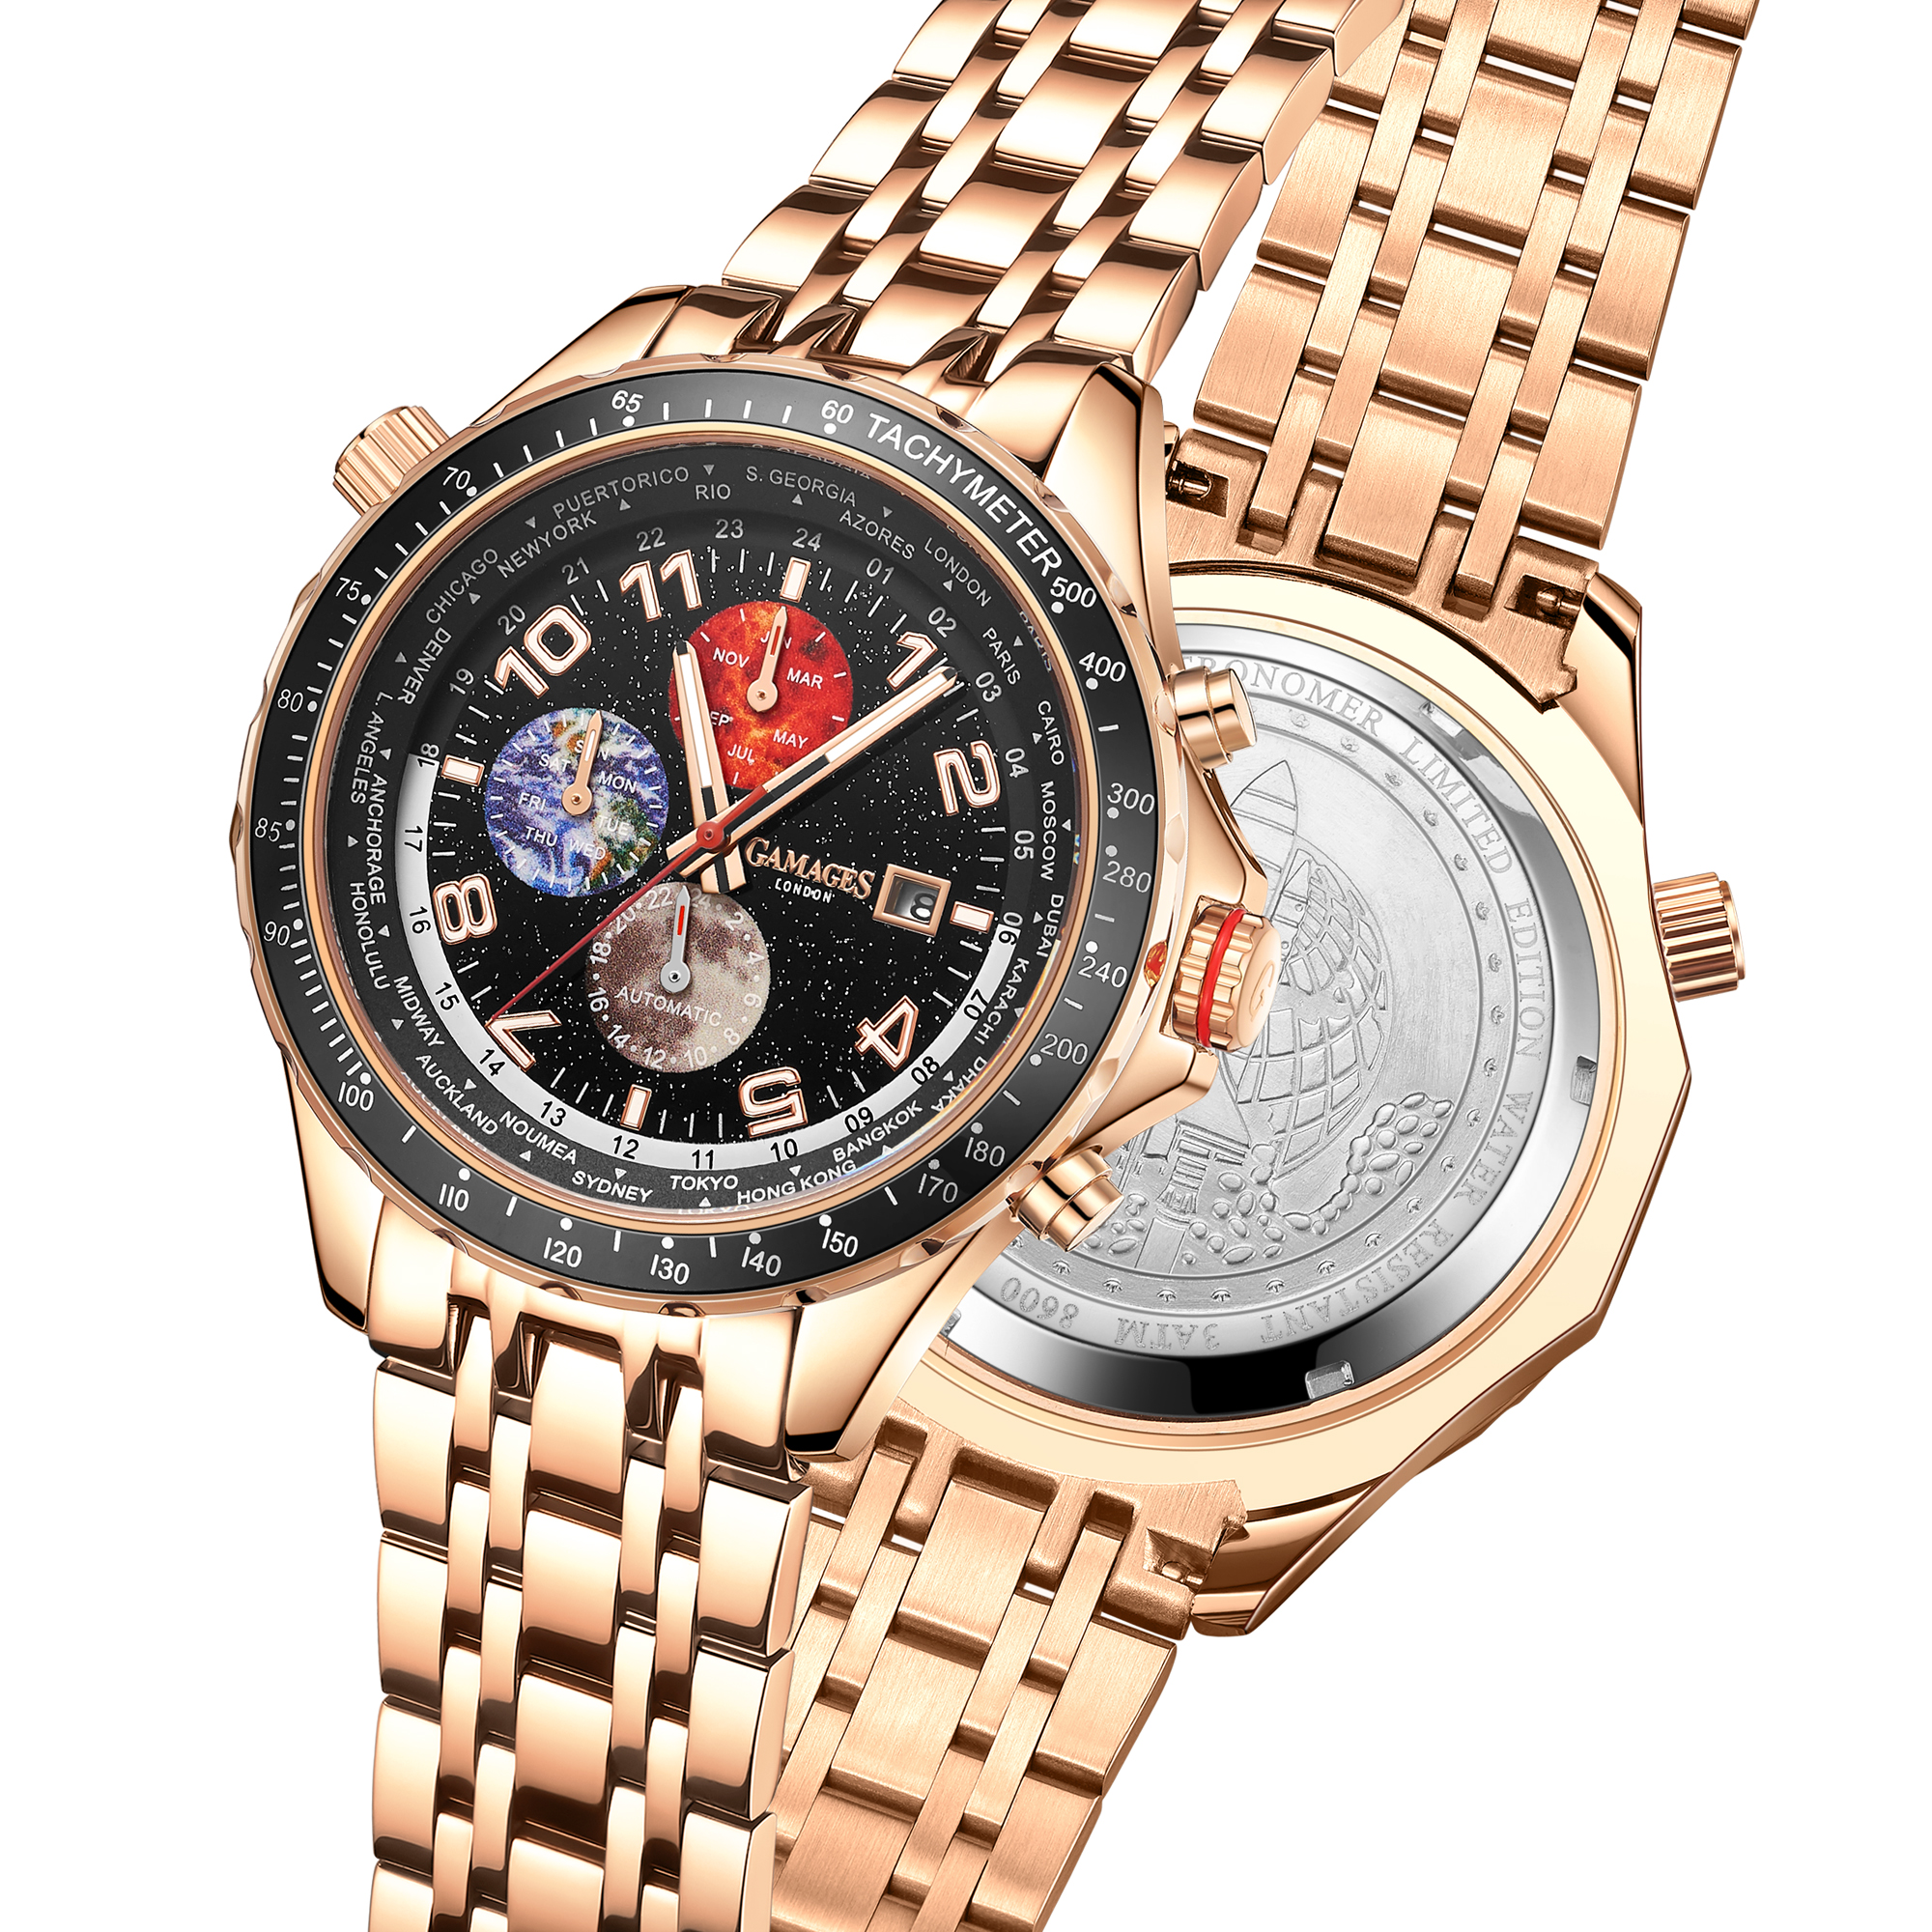 Limited Edition Hand Assembled GAMAGES Astronomer Automatic Rose – 5 Year Warranty & Free Delivery - Image 5 of 5